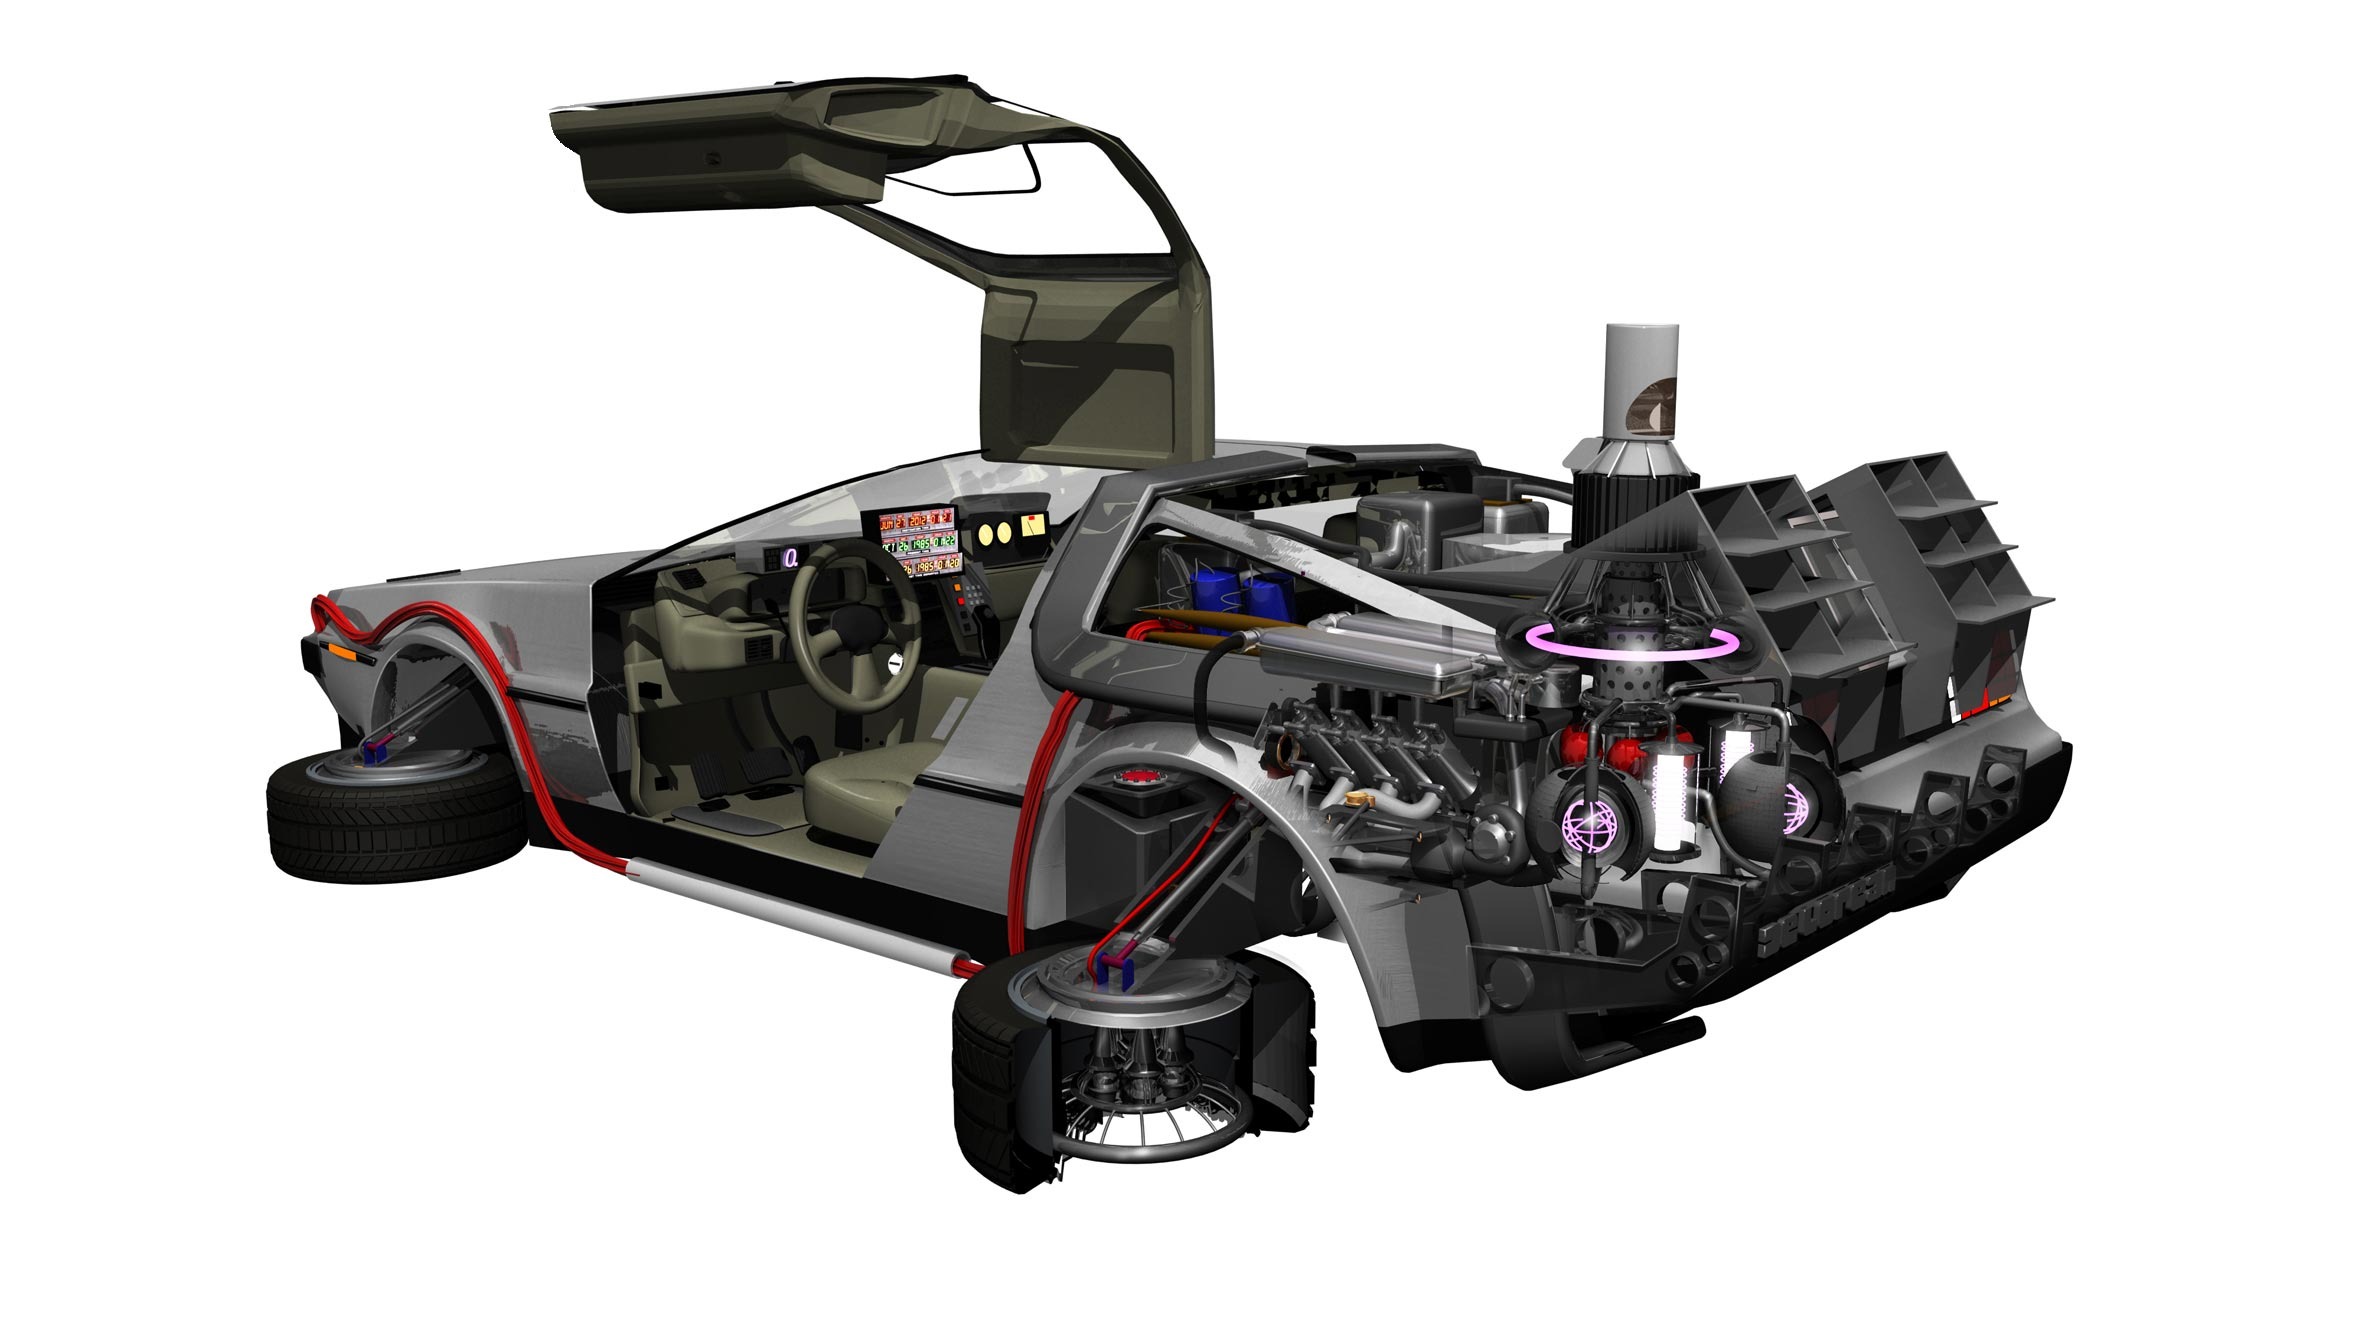 DeLorean DMC-12 cutaway drawing